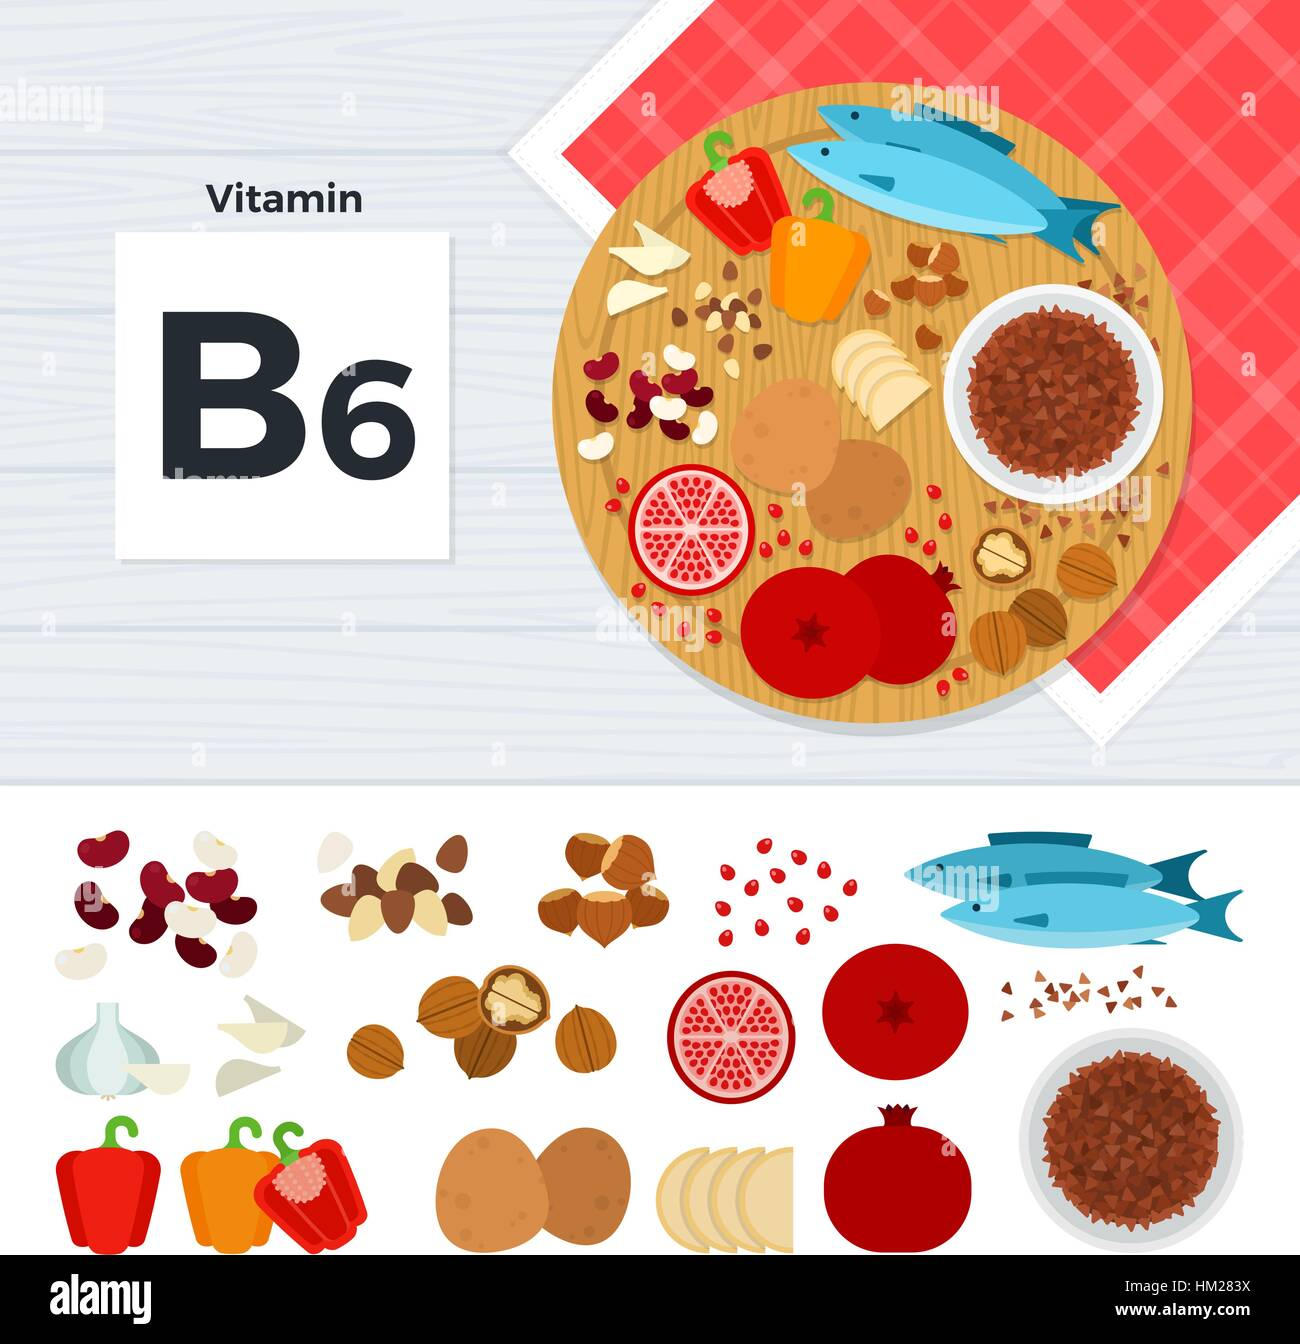 Products with vitamin B6 - Stock Image